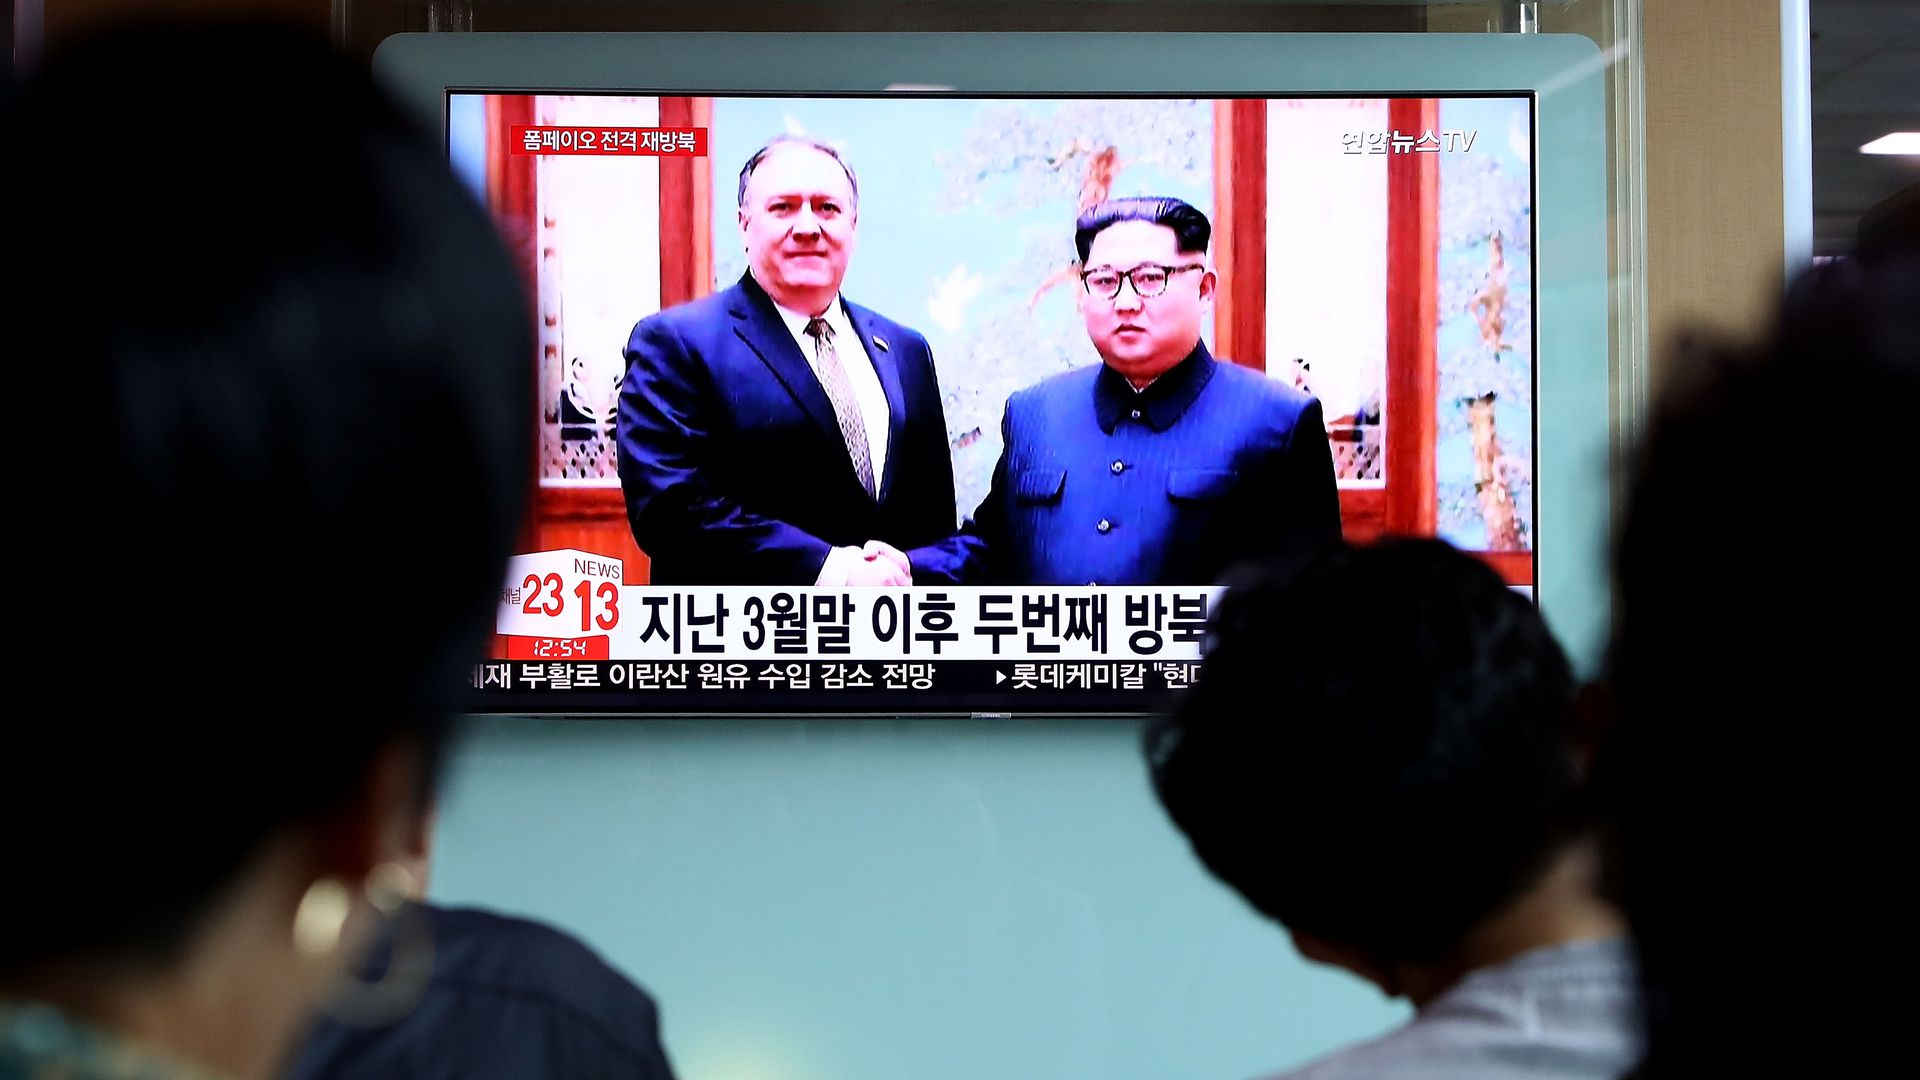 Pompeo and Kim on Korean TV